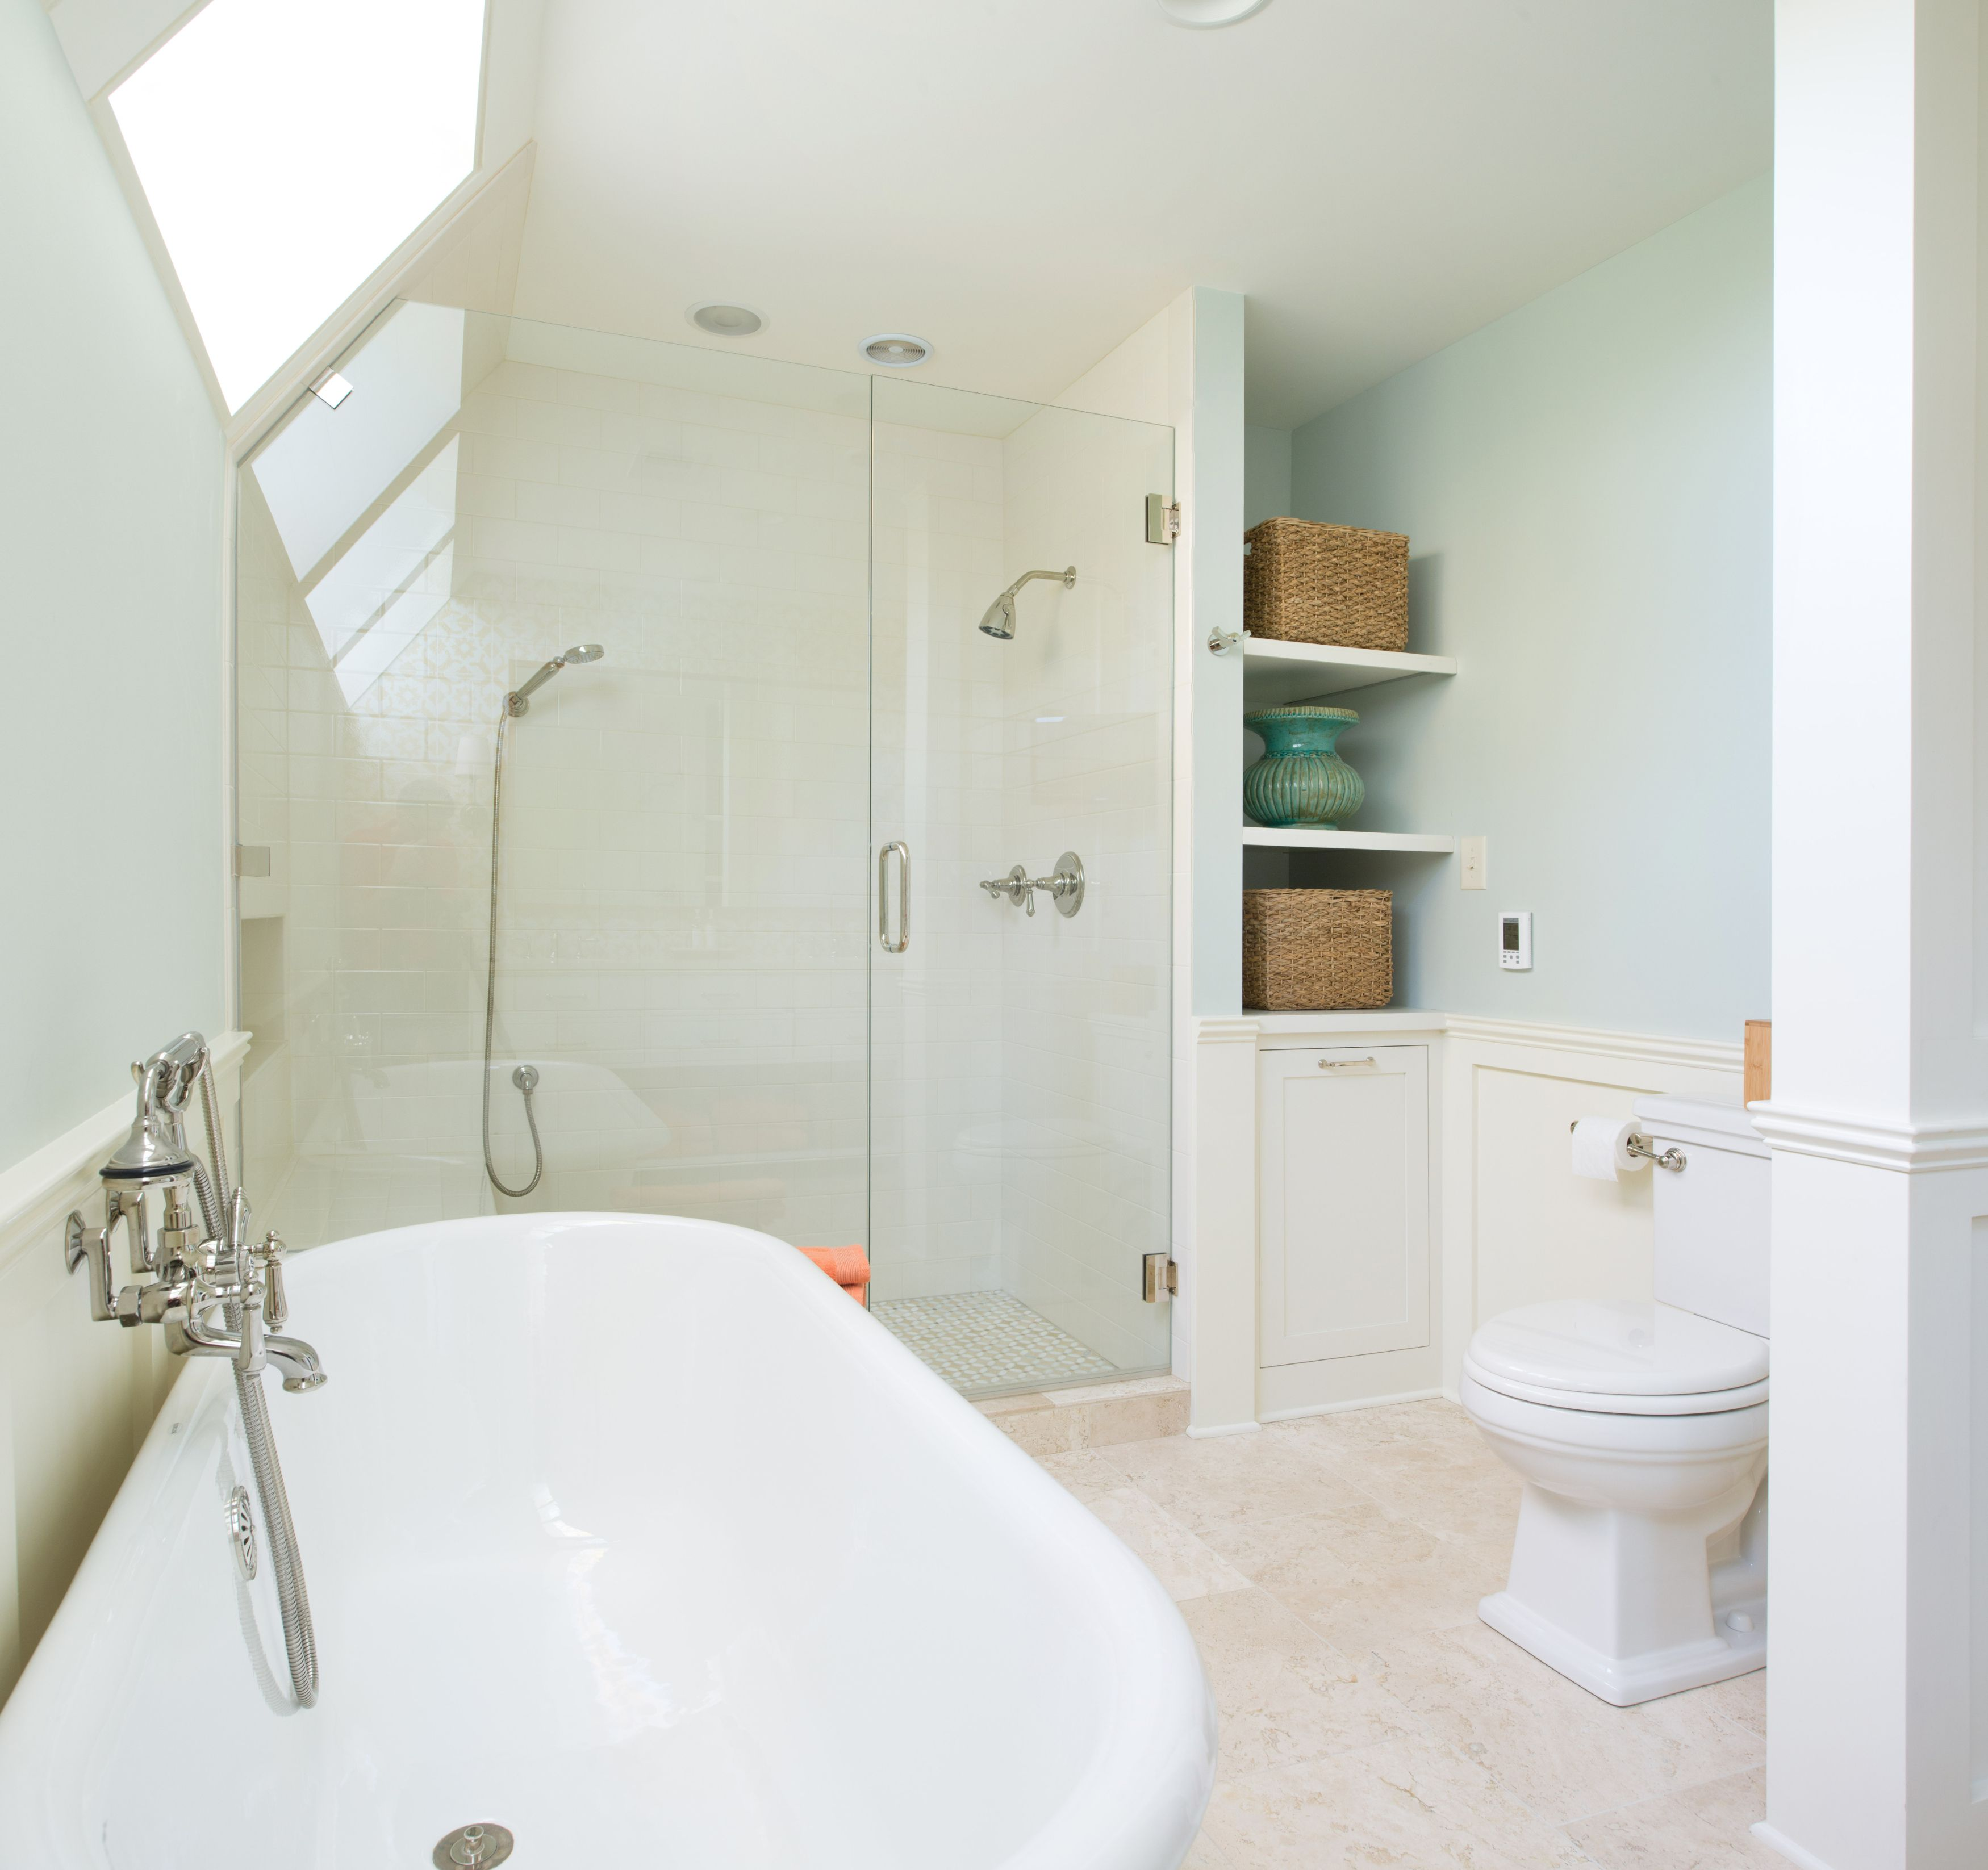 Kitchen And Bathroom Remodeling Contractors: Tiled Shower With With Euro Glass Shower Doors, Free